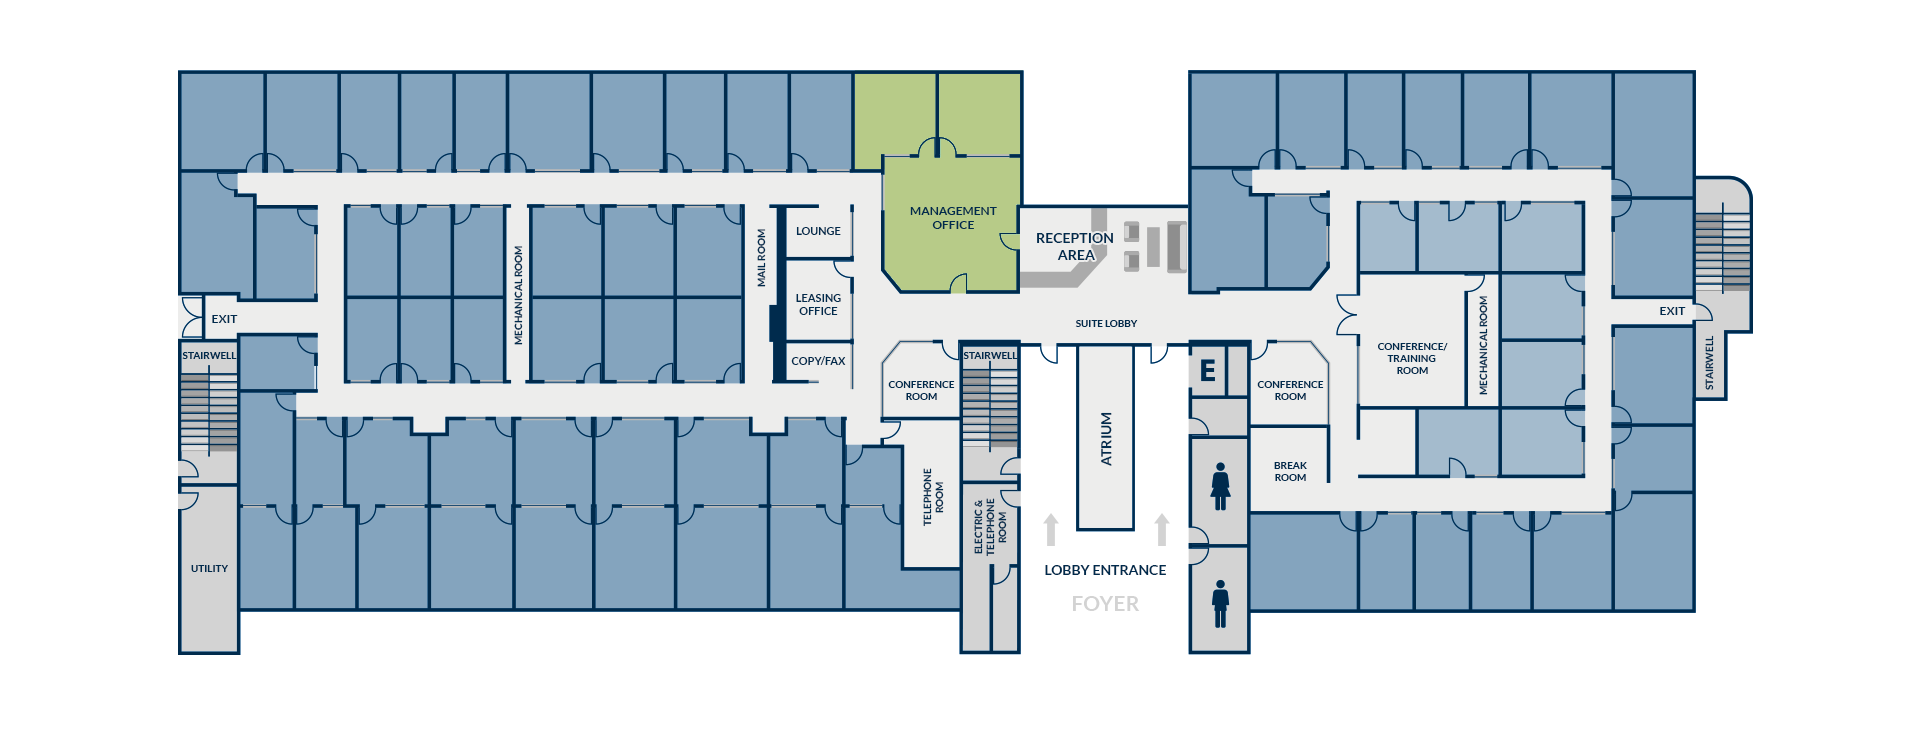 Executive Suites Floor Plan